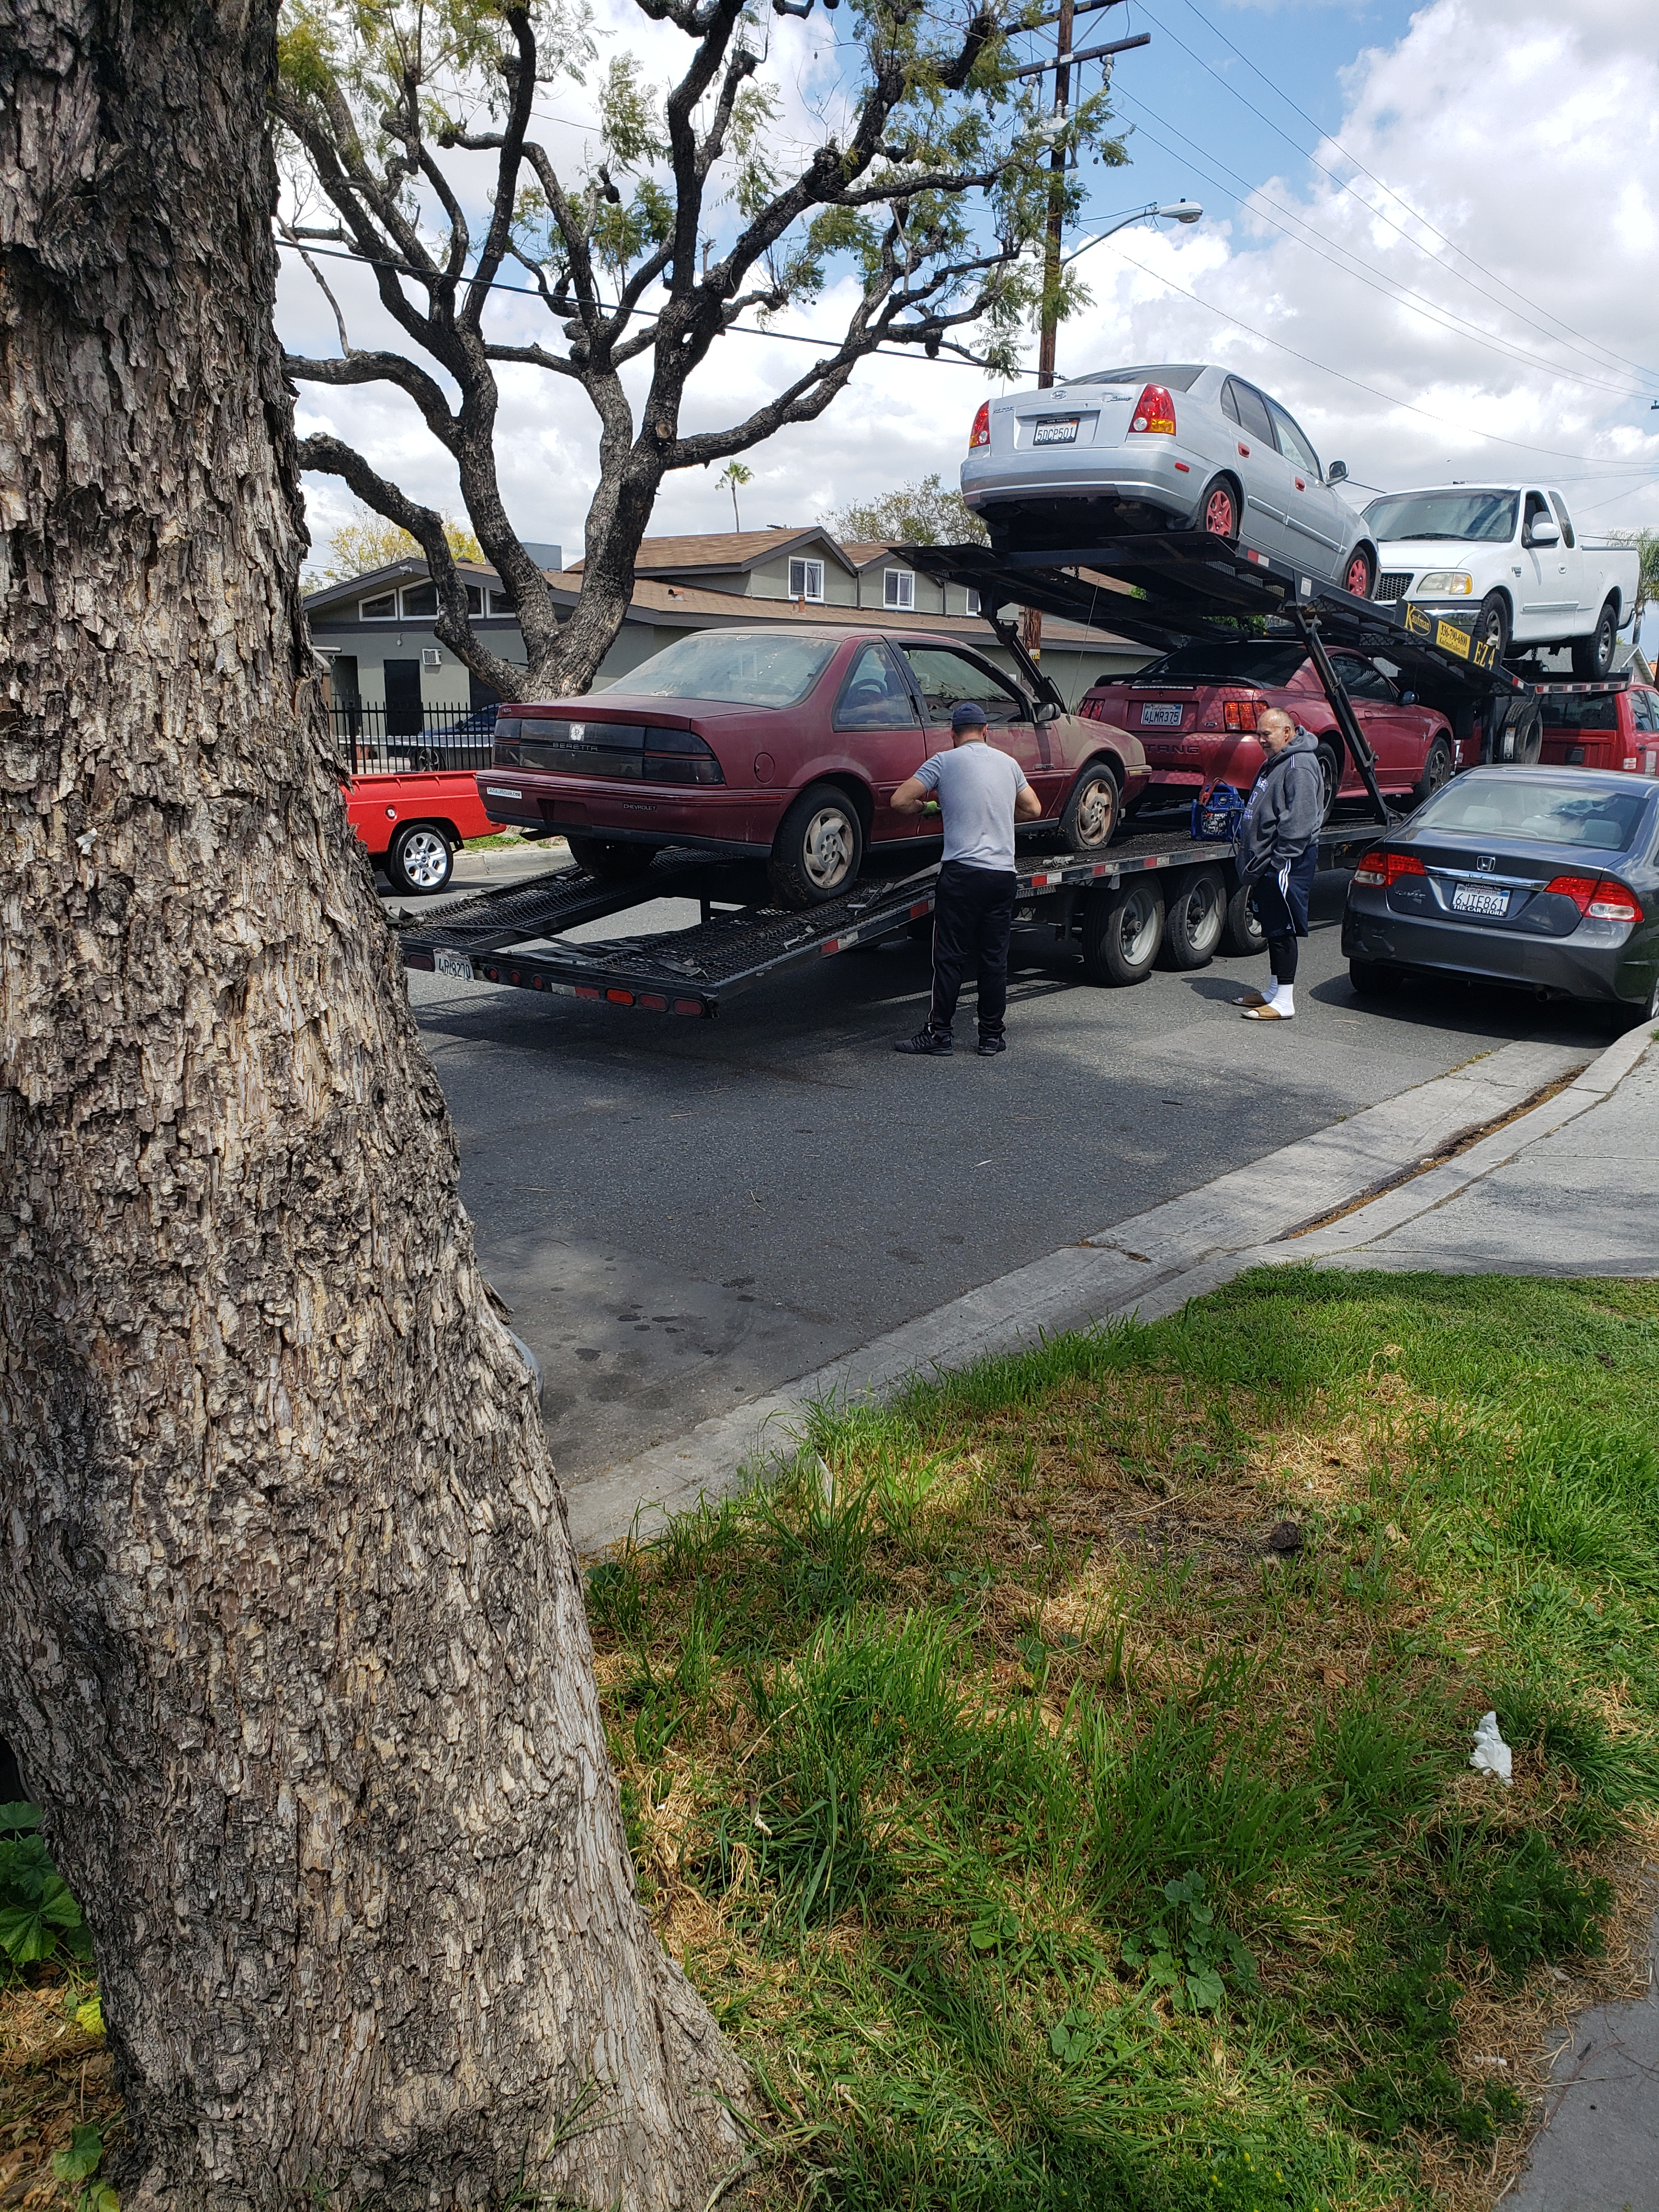 Joaquin getting Grace ready for towing